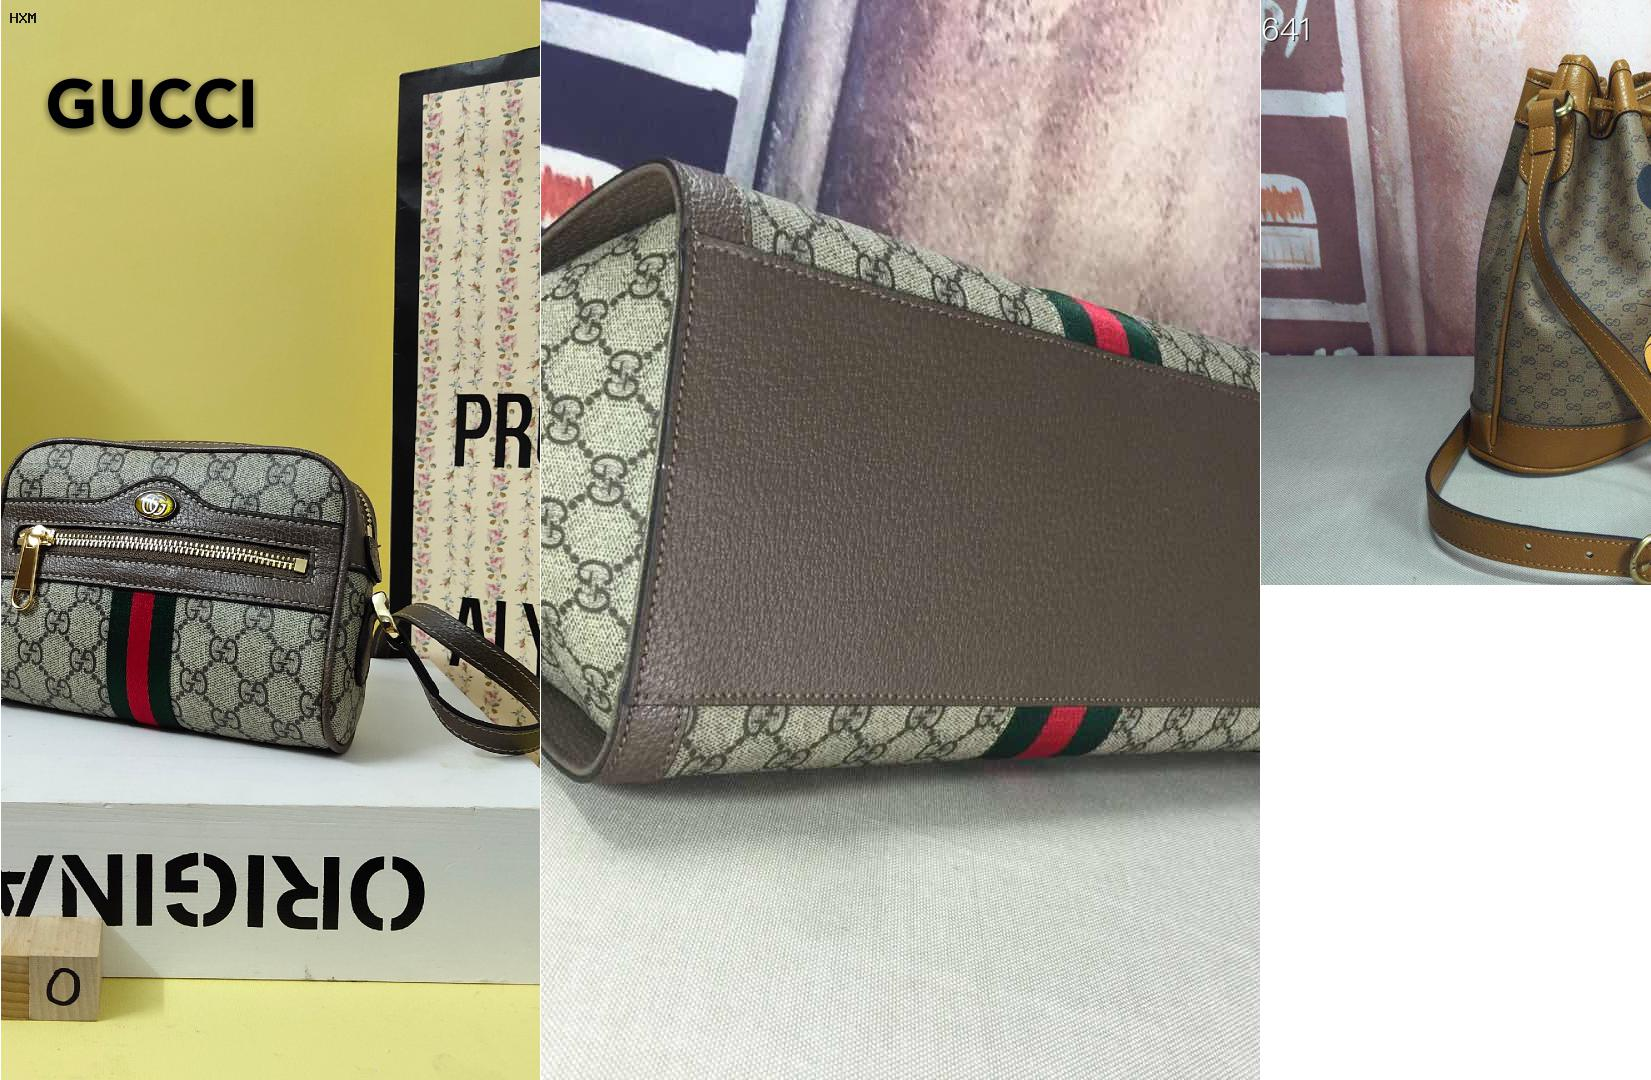 sac gucci bandouliere homme